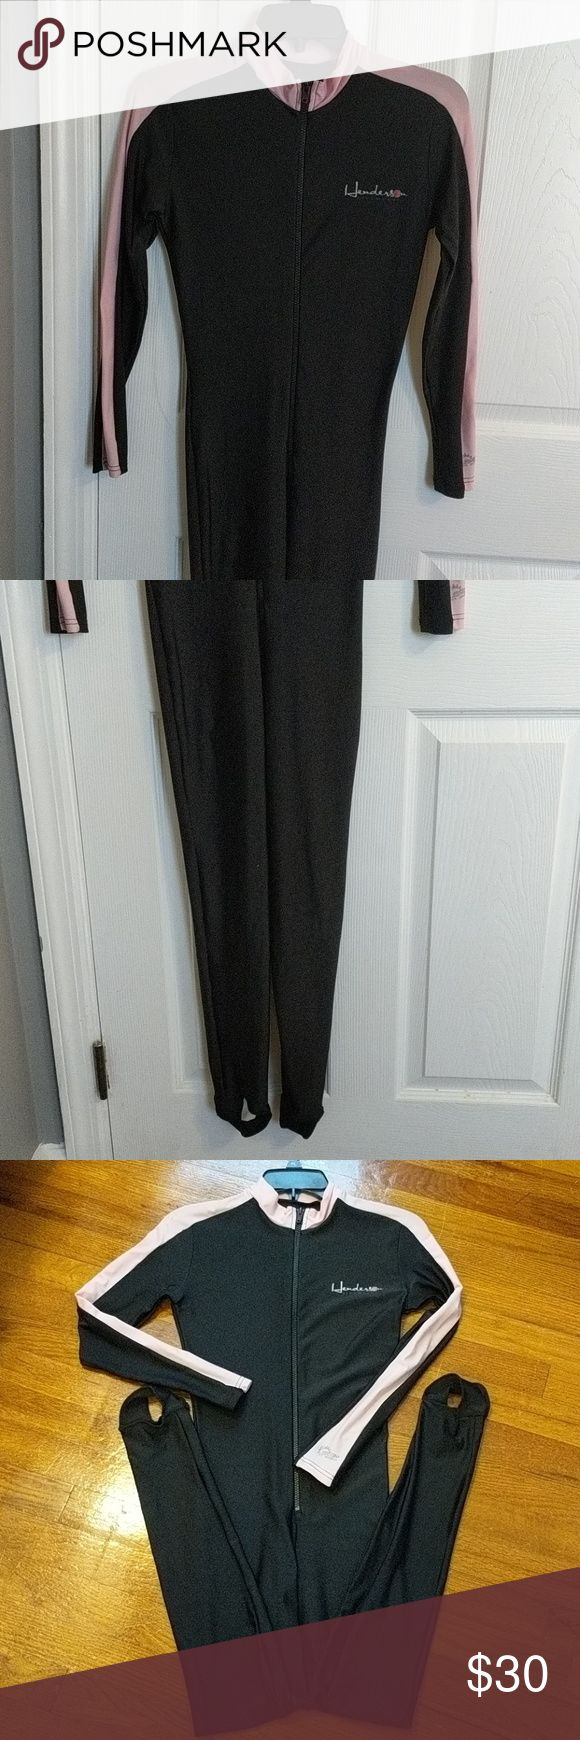 Henderson Diveskin /Rash Gaird Worn Once Henderson Diveskin Blended nylon/Lycra Material. Overlook seams. 50+ UV Protection. Quick Drying. Hot Skin Jumpsuit. Zipper YKK #5 size L. Excellent Condition. One area on back of neck wear Velcro pick a little  Only spot Henderson Swim